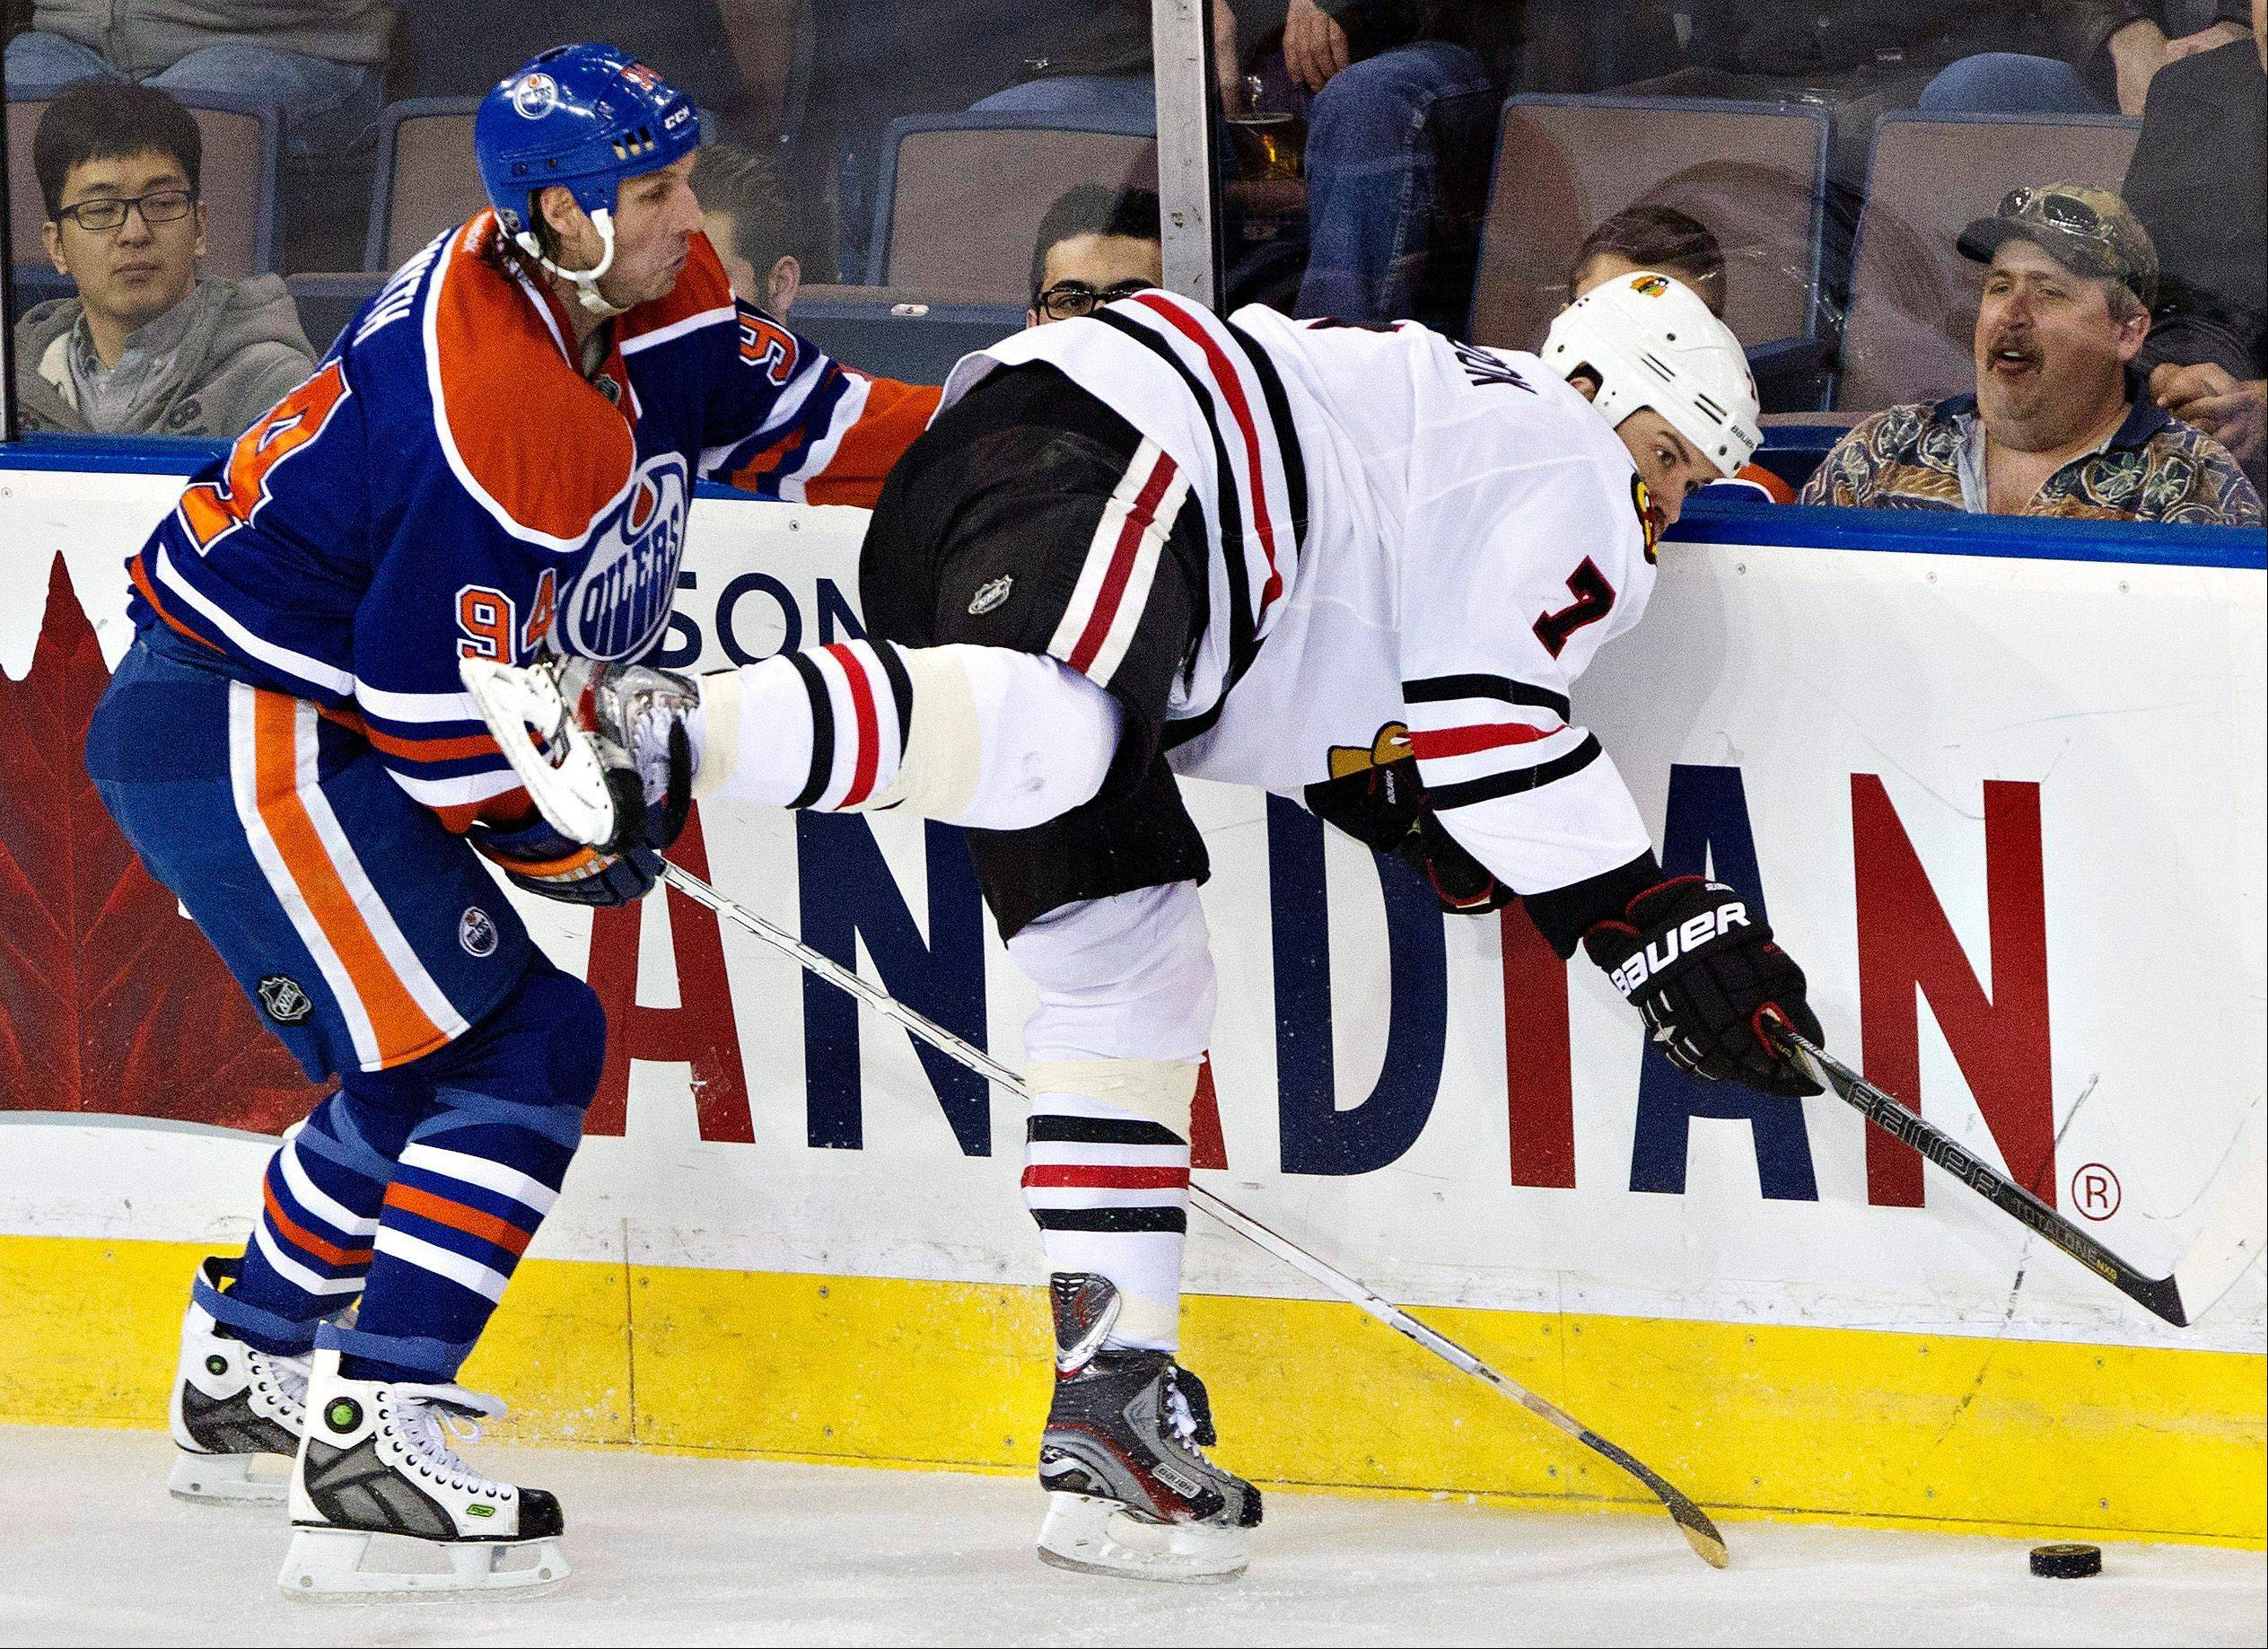 Chicago Blackhawks' Brent Seabrook (7) is checked by Edmonton Oilers' Ryan Smyth during the second period of their NHL hockey game in Edmonton, Alberta, Wednesday, April 24, 2013.